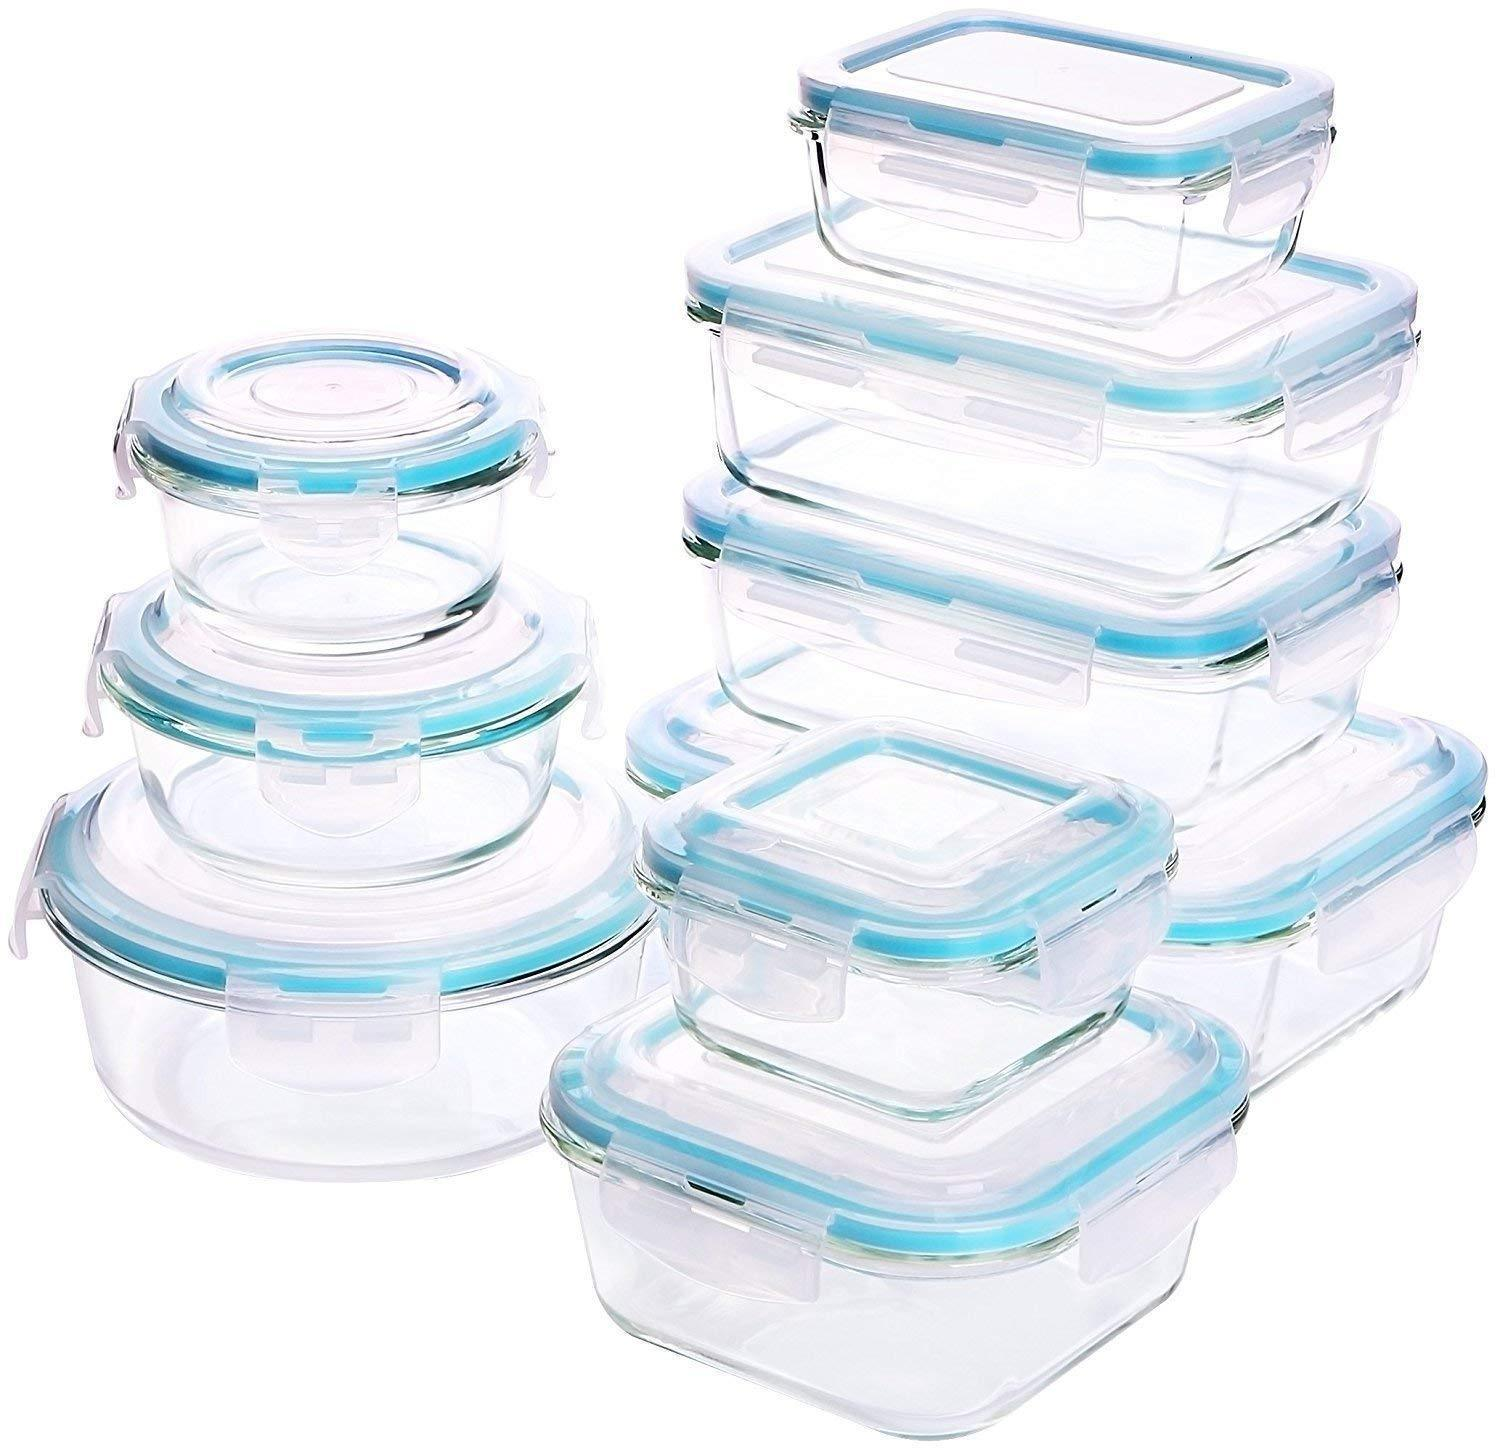 Utopia Kitchen Glass Food Storage Container Set 18 Pieces (9 Containers+9 Lids) 1